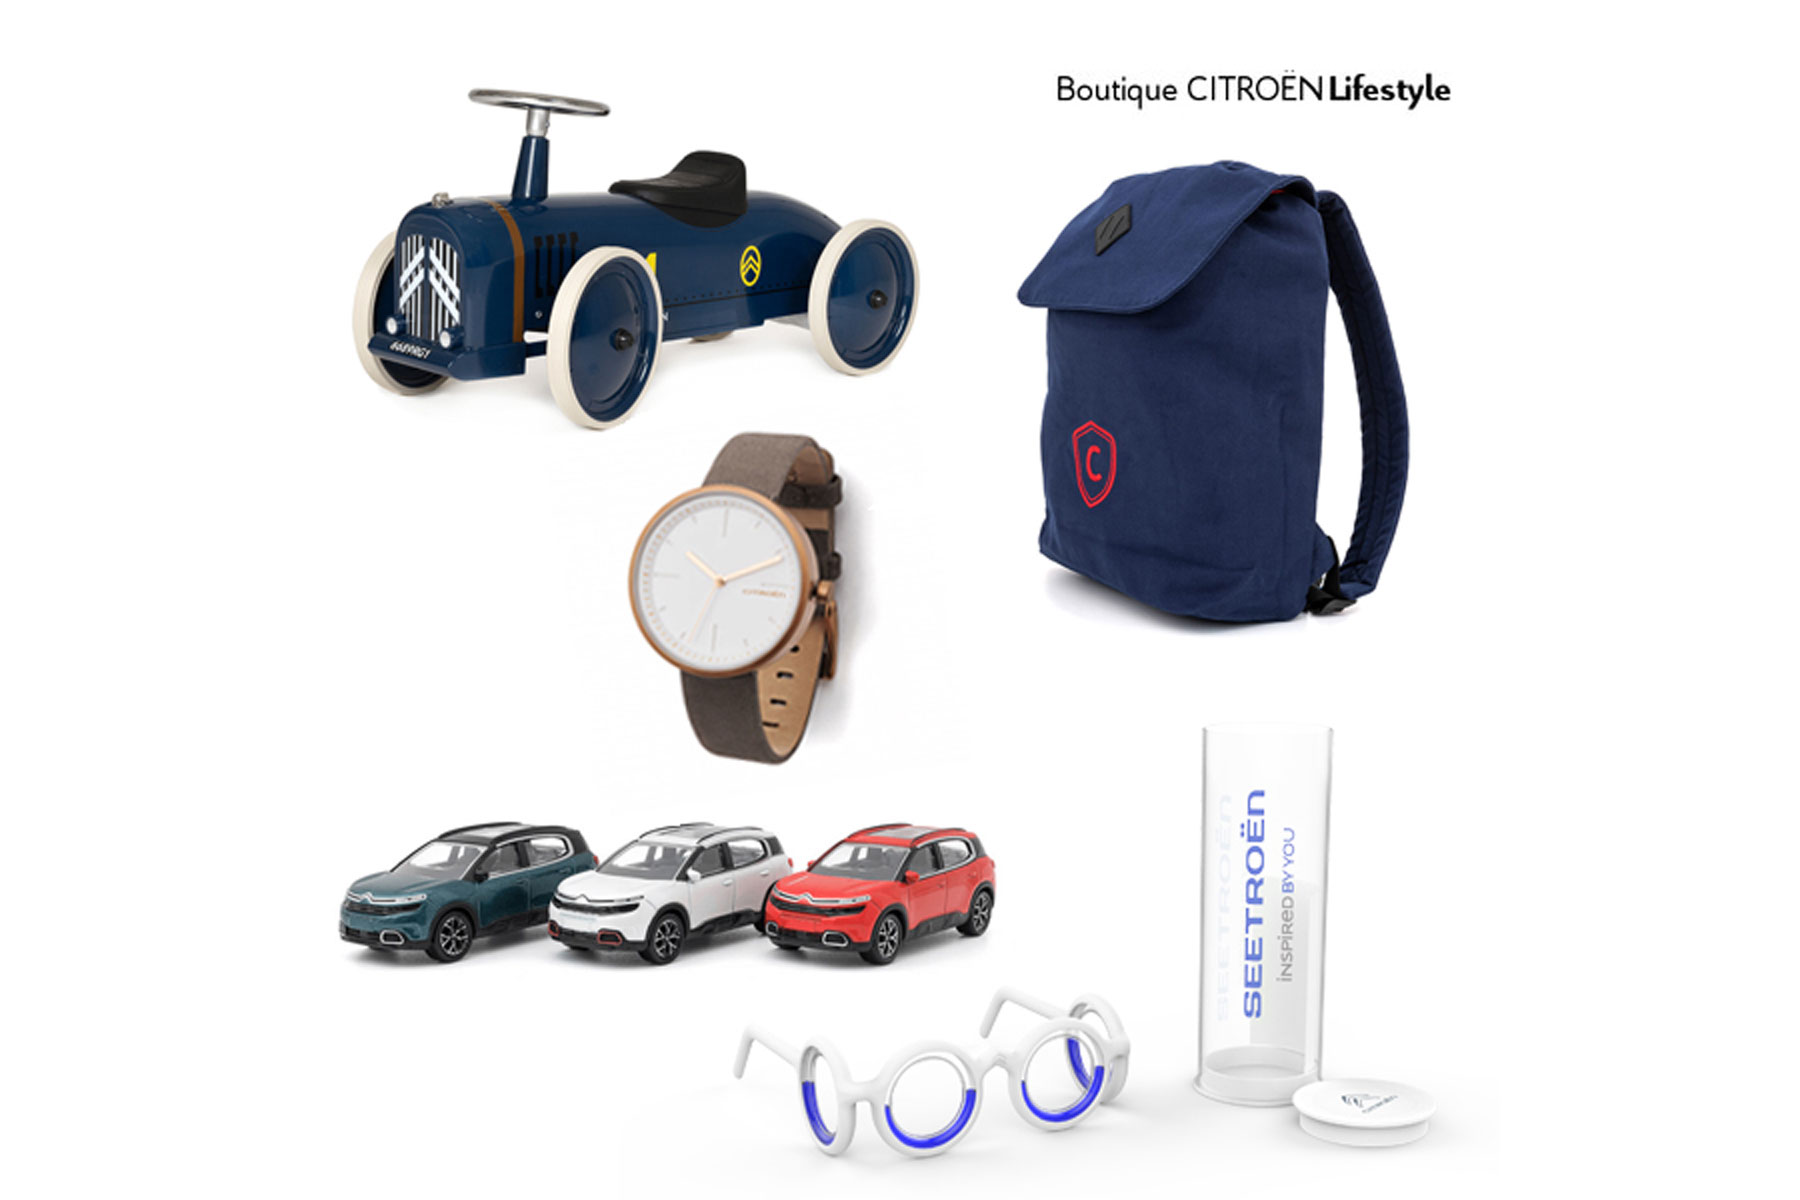 Citroen Lifestyle Boutique